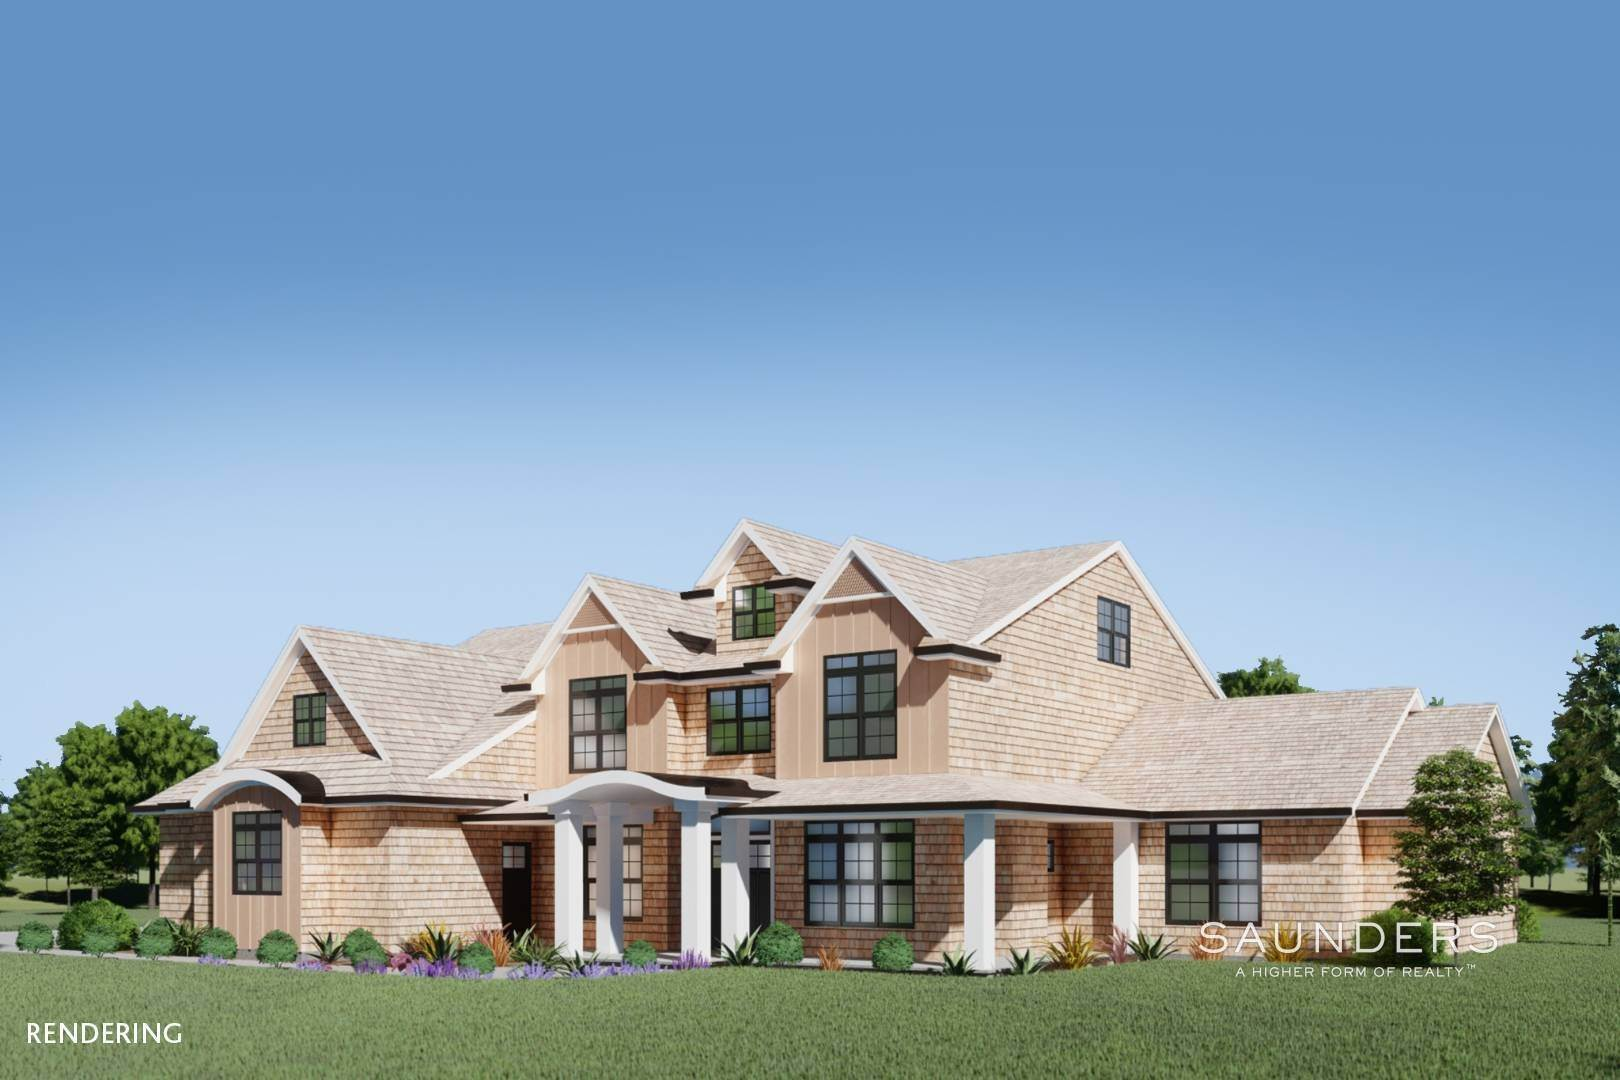 7. Single Family Homes for Sale at New Construction In Sagaponack With Pool 26 Forest Crossing, Sagaponack, Southampton Town, NY 11962